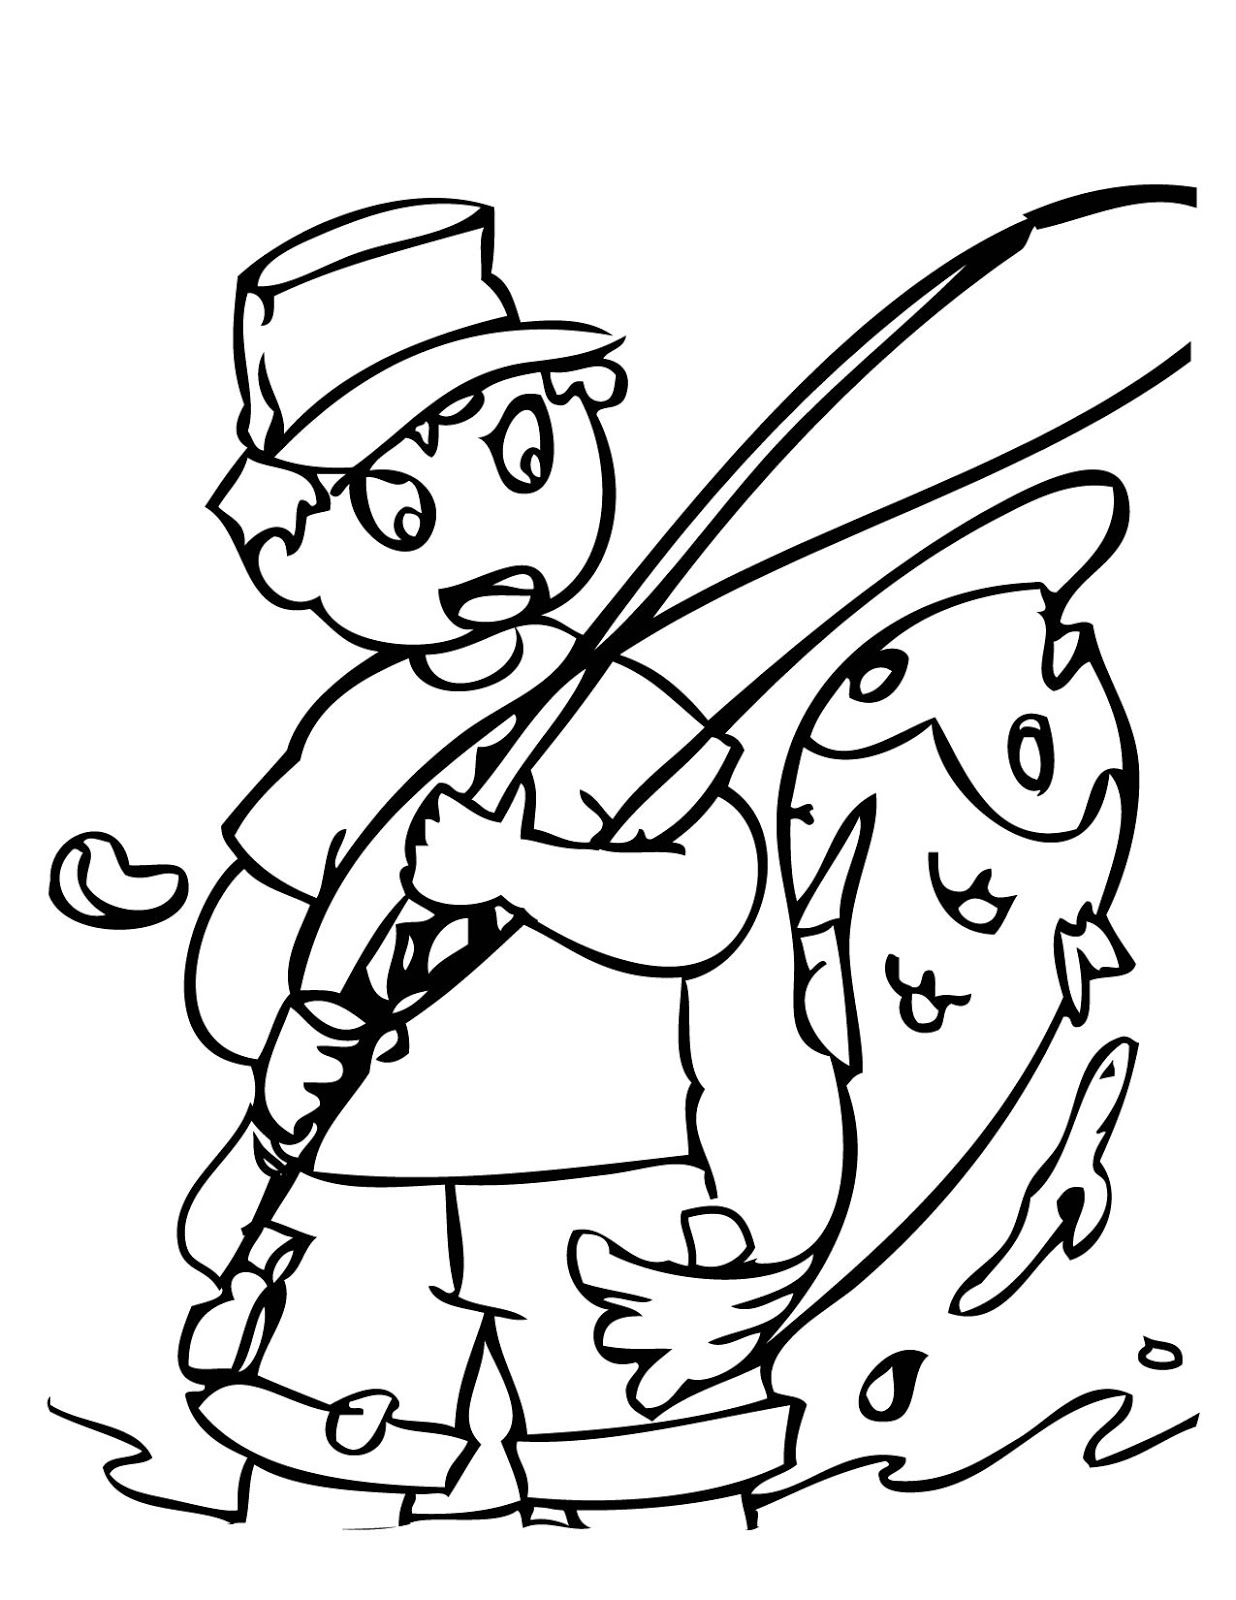 fish coloring pages for kids - photo#46